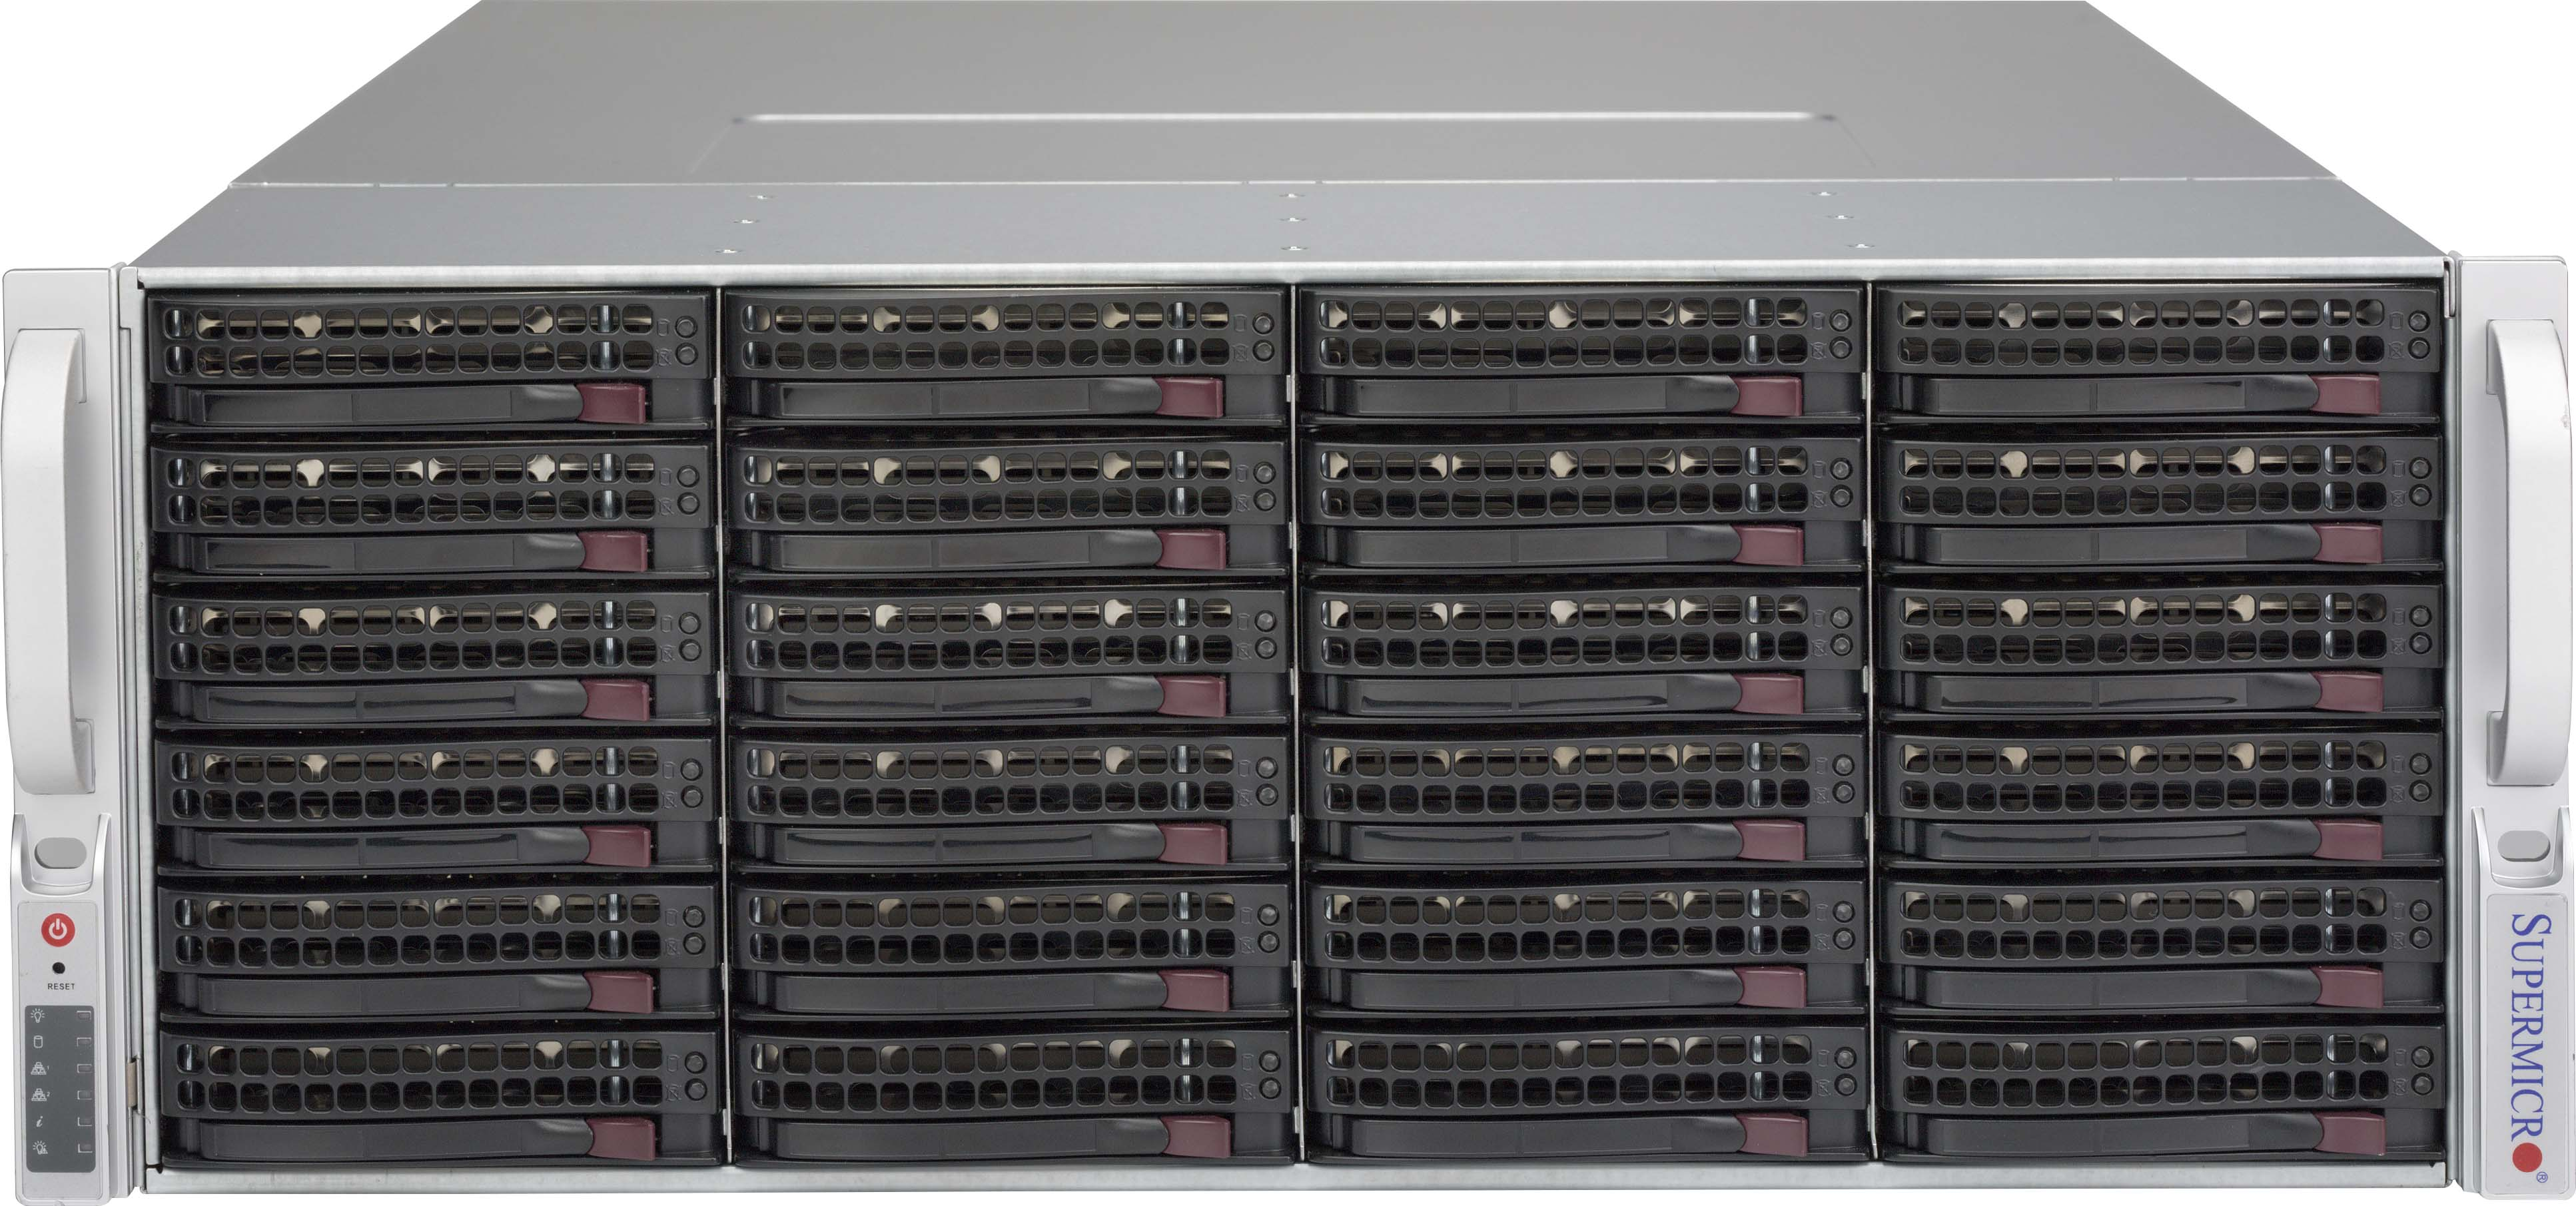 Sc847a R1400lpb 4u Chassis Products Super Micro